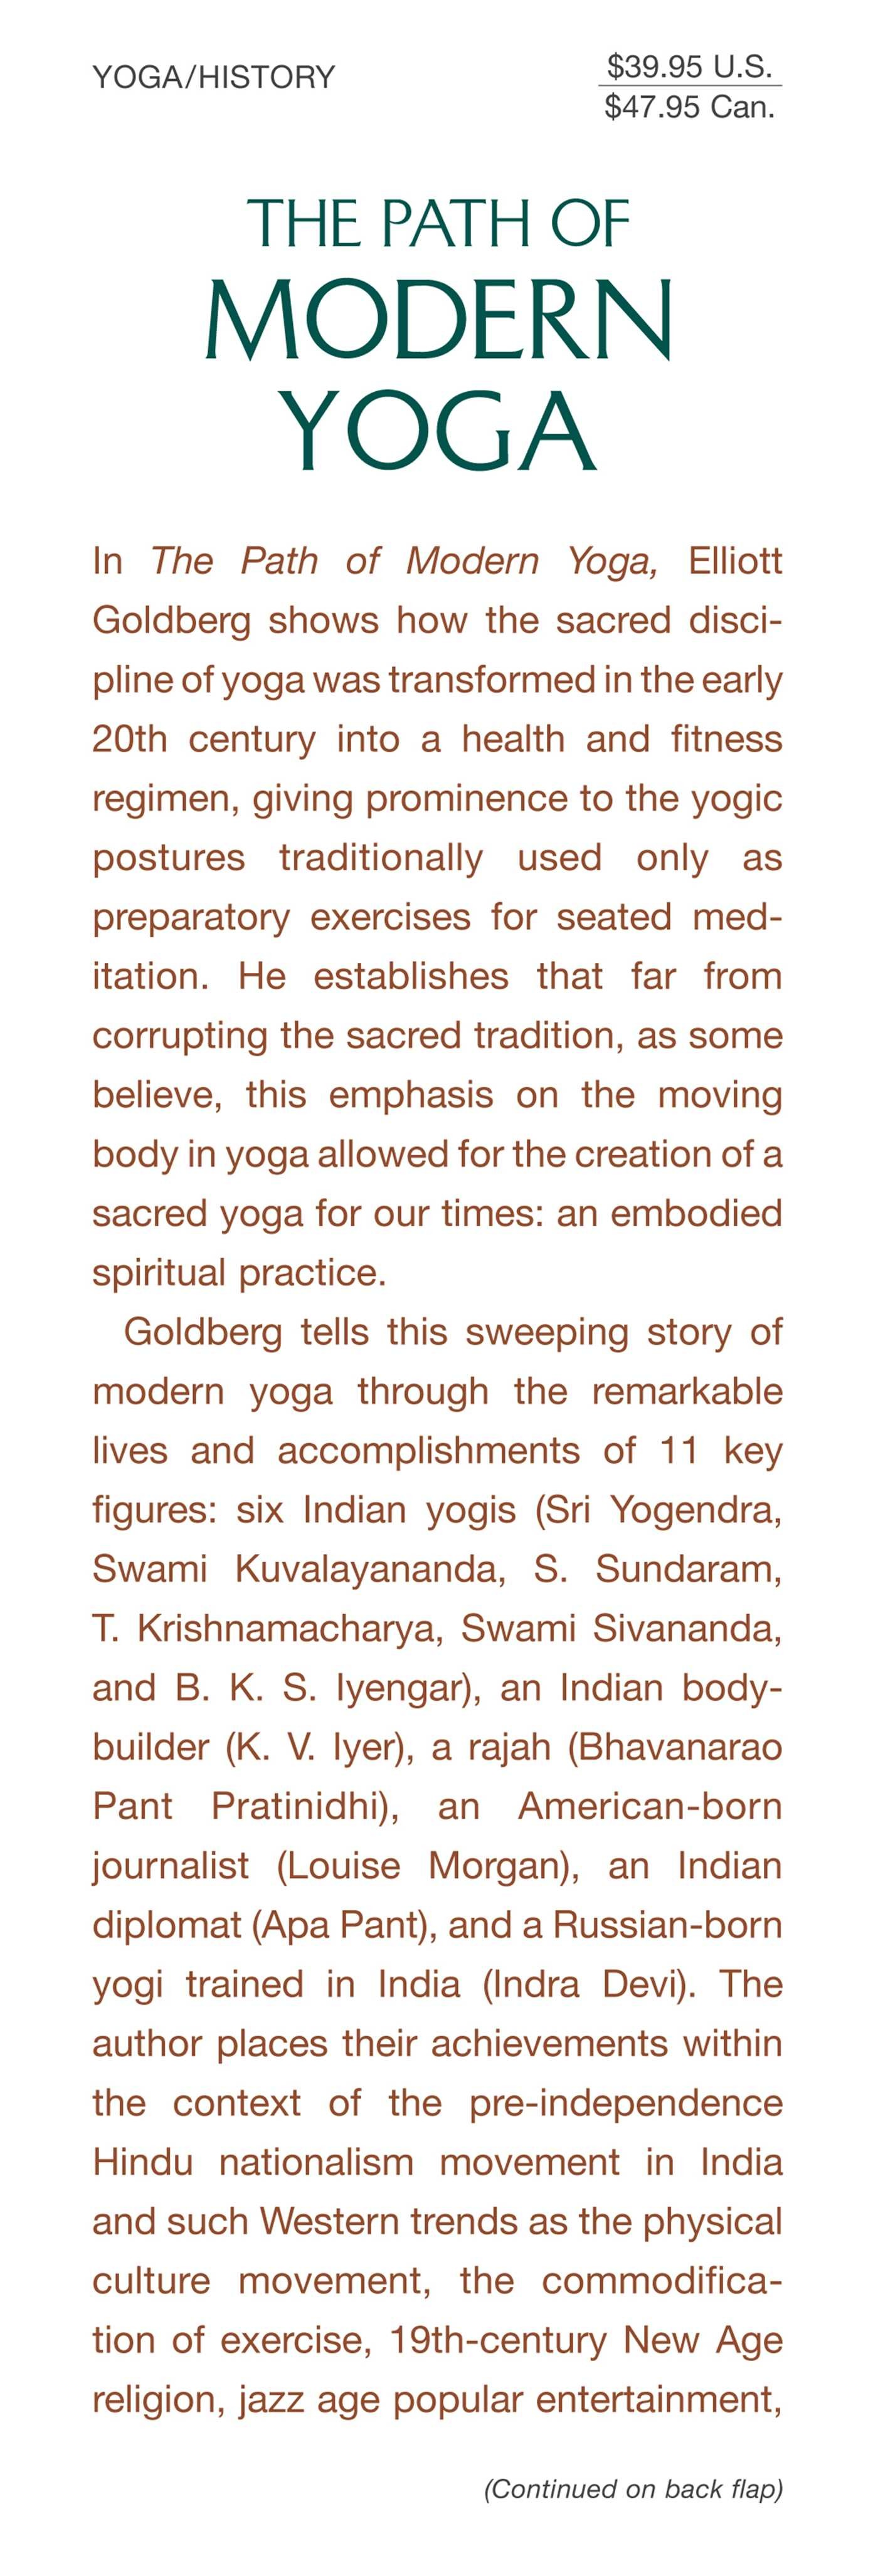 The path of modern yoga 9781620555675.in01